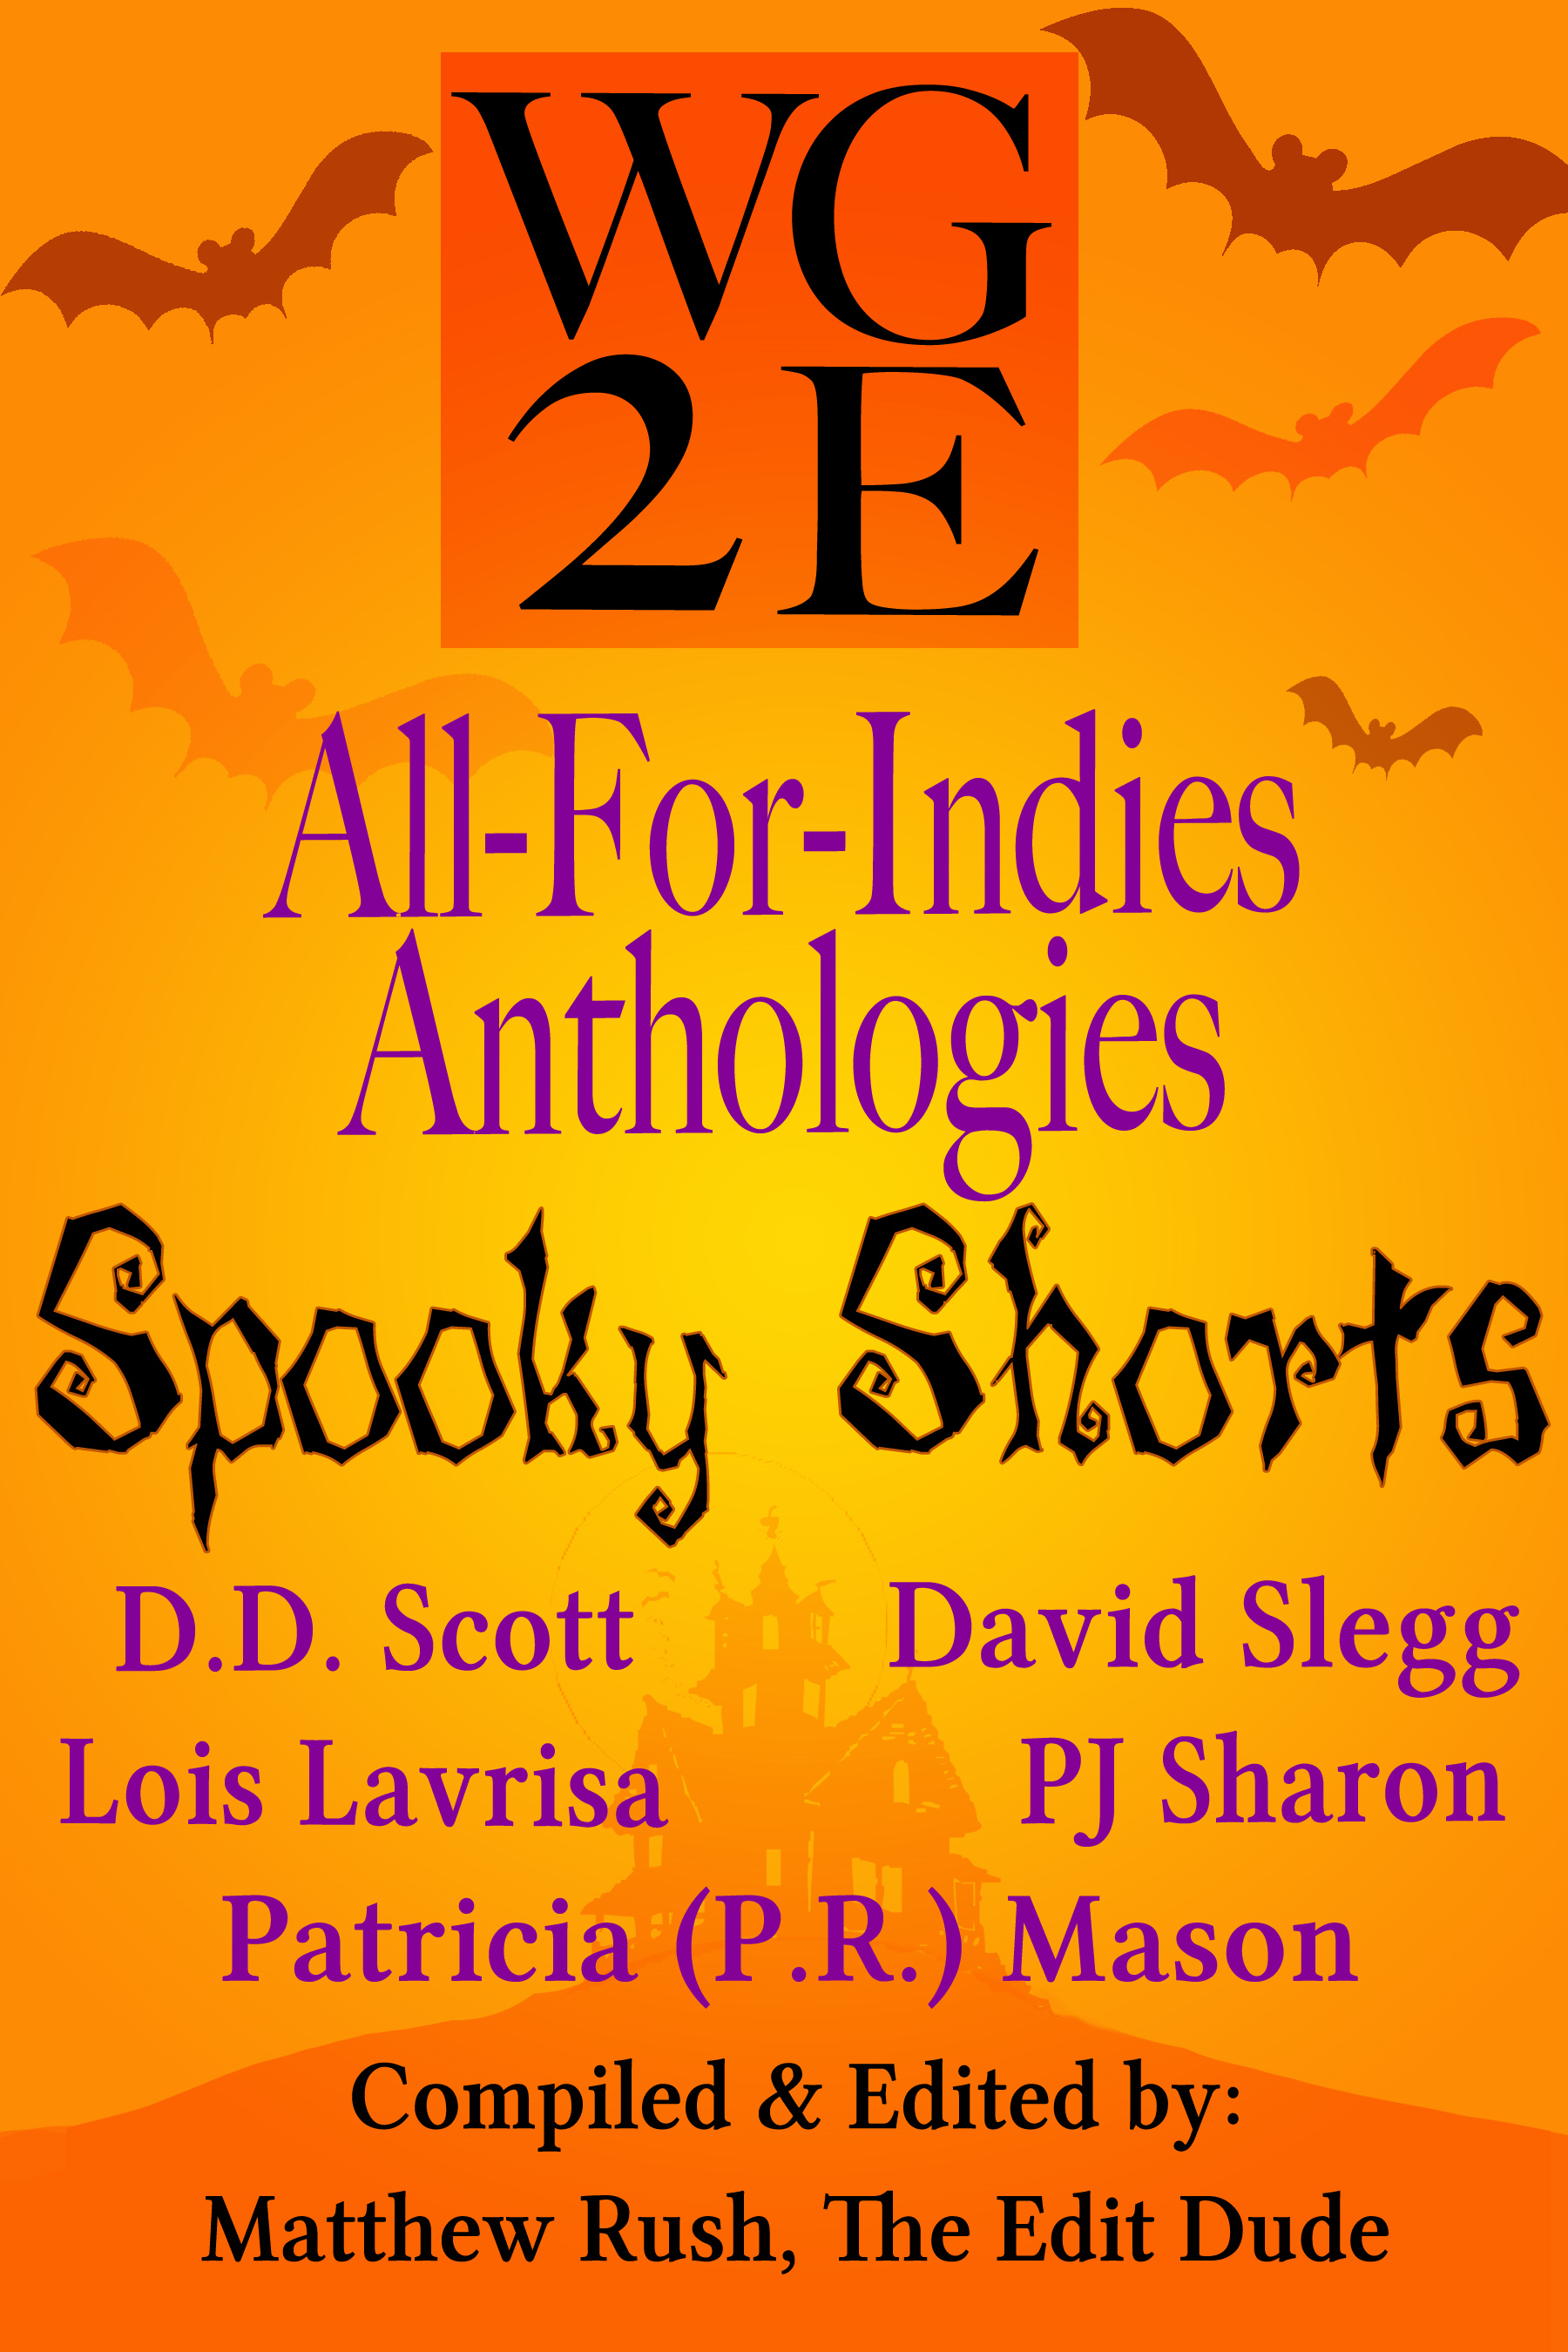 The WG2E All-For-Indies Anthologies: Spooky Shorts Edition By: D. D. Scott